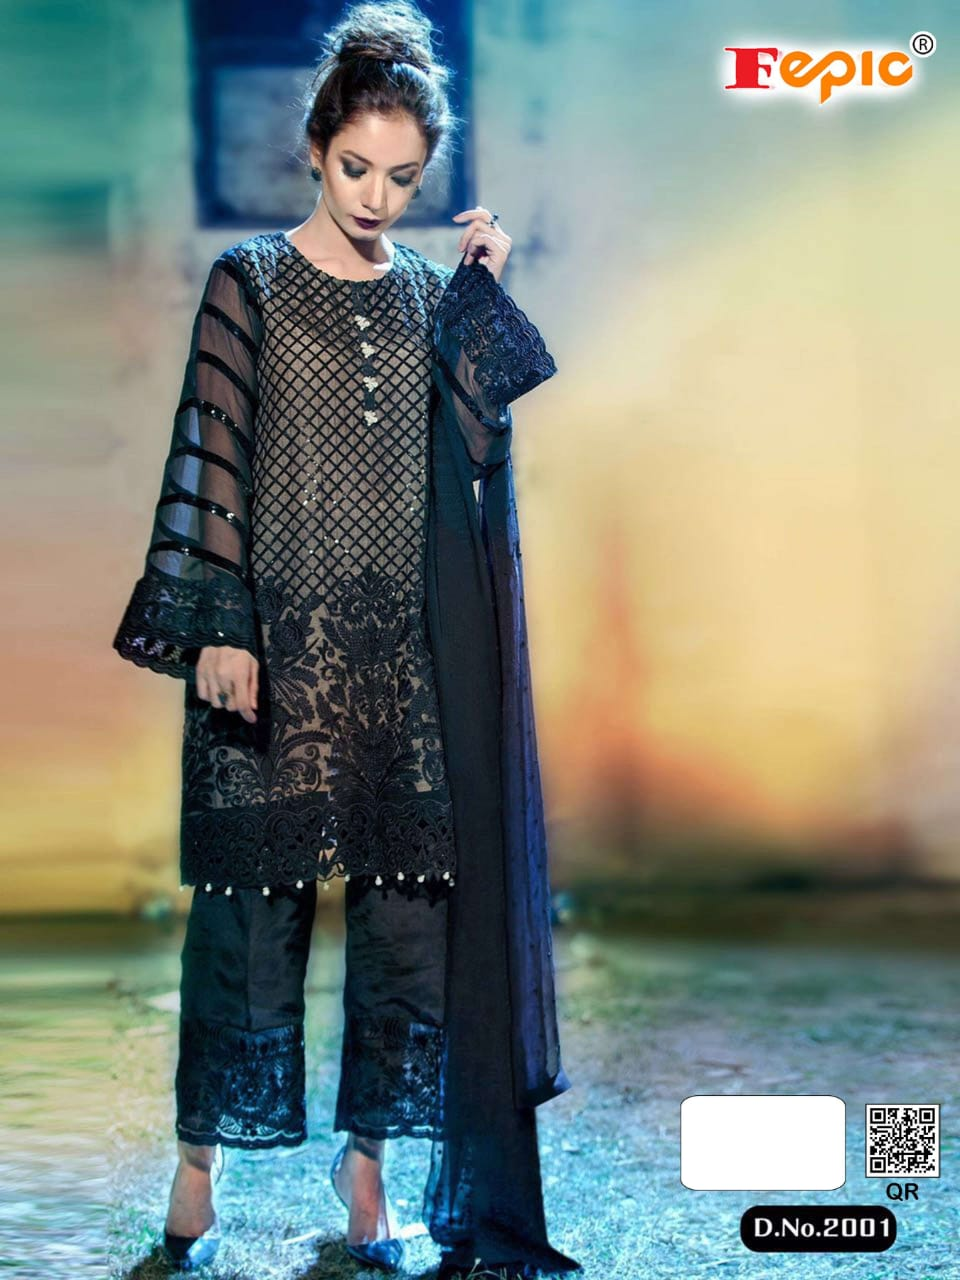 Fepic Rosemeen Pakistani Suits Collection At Wholesale Rate